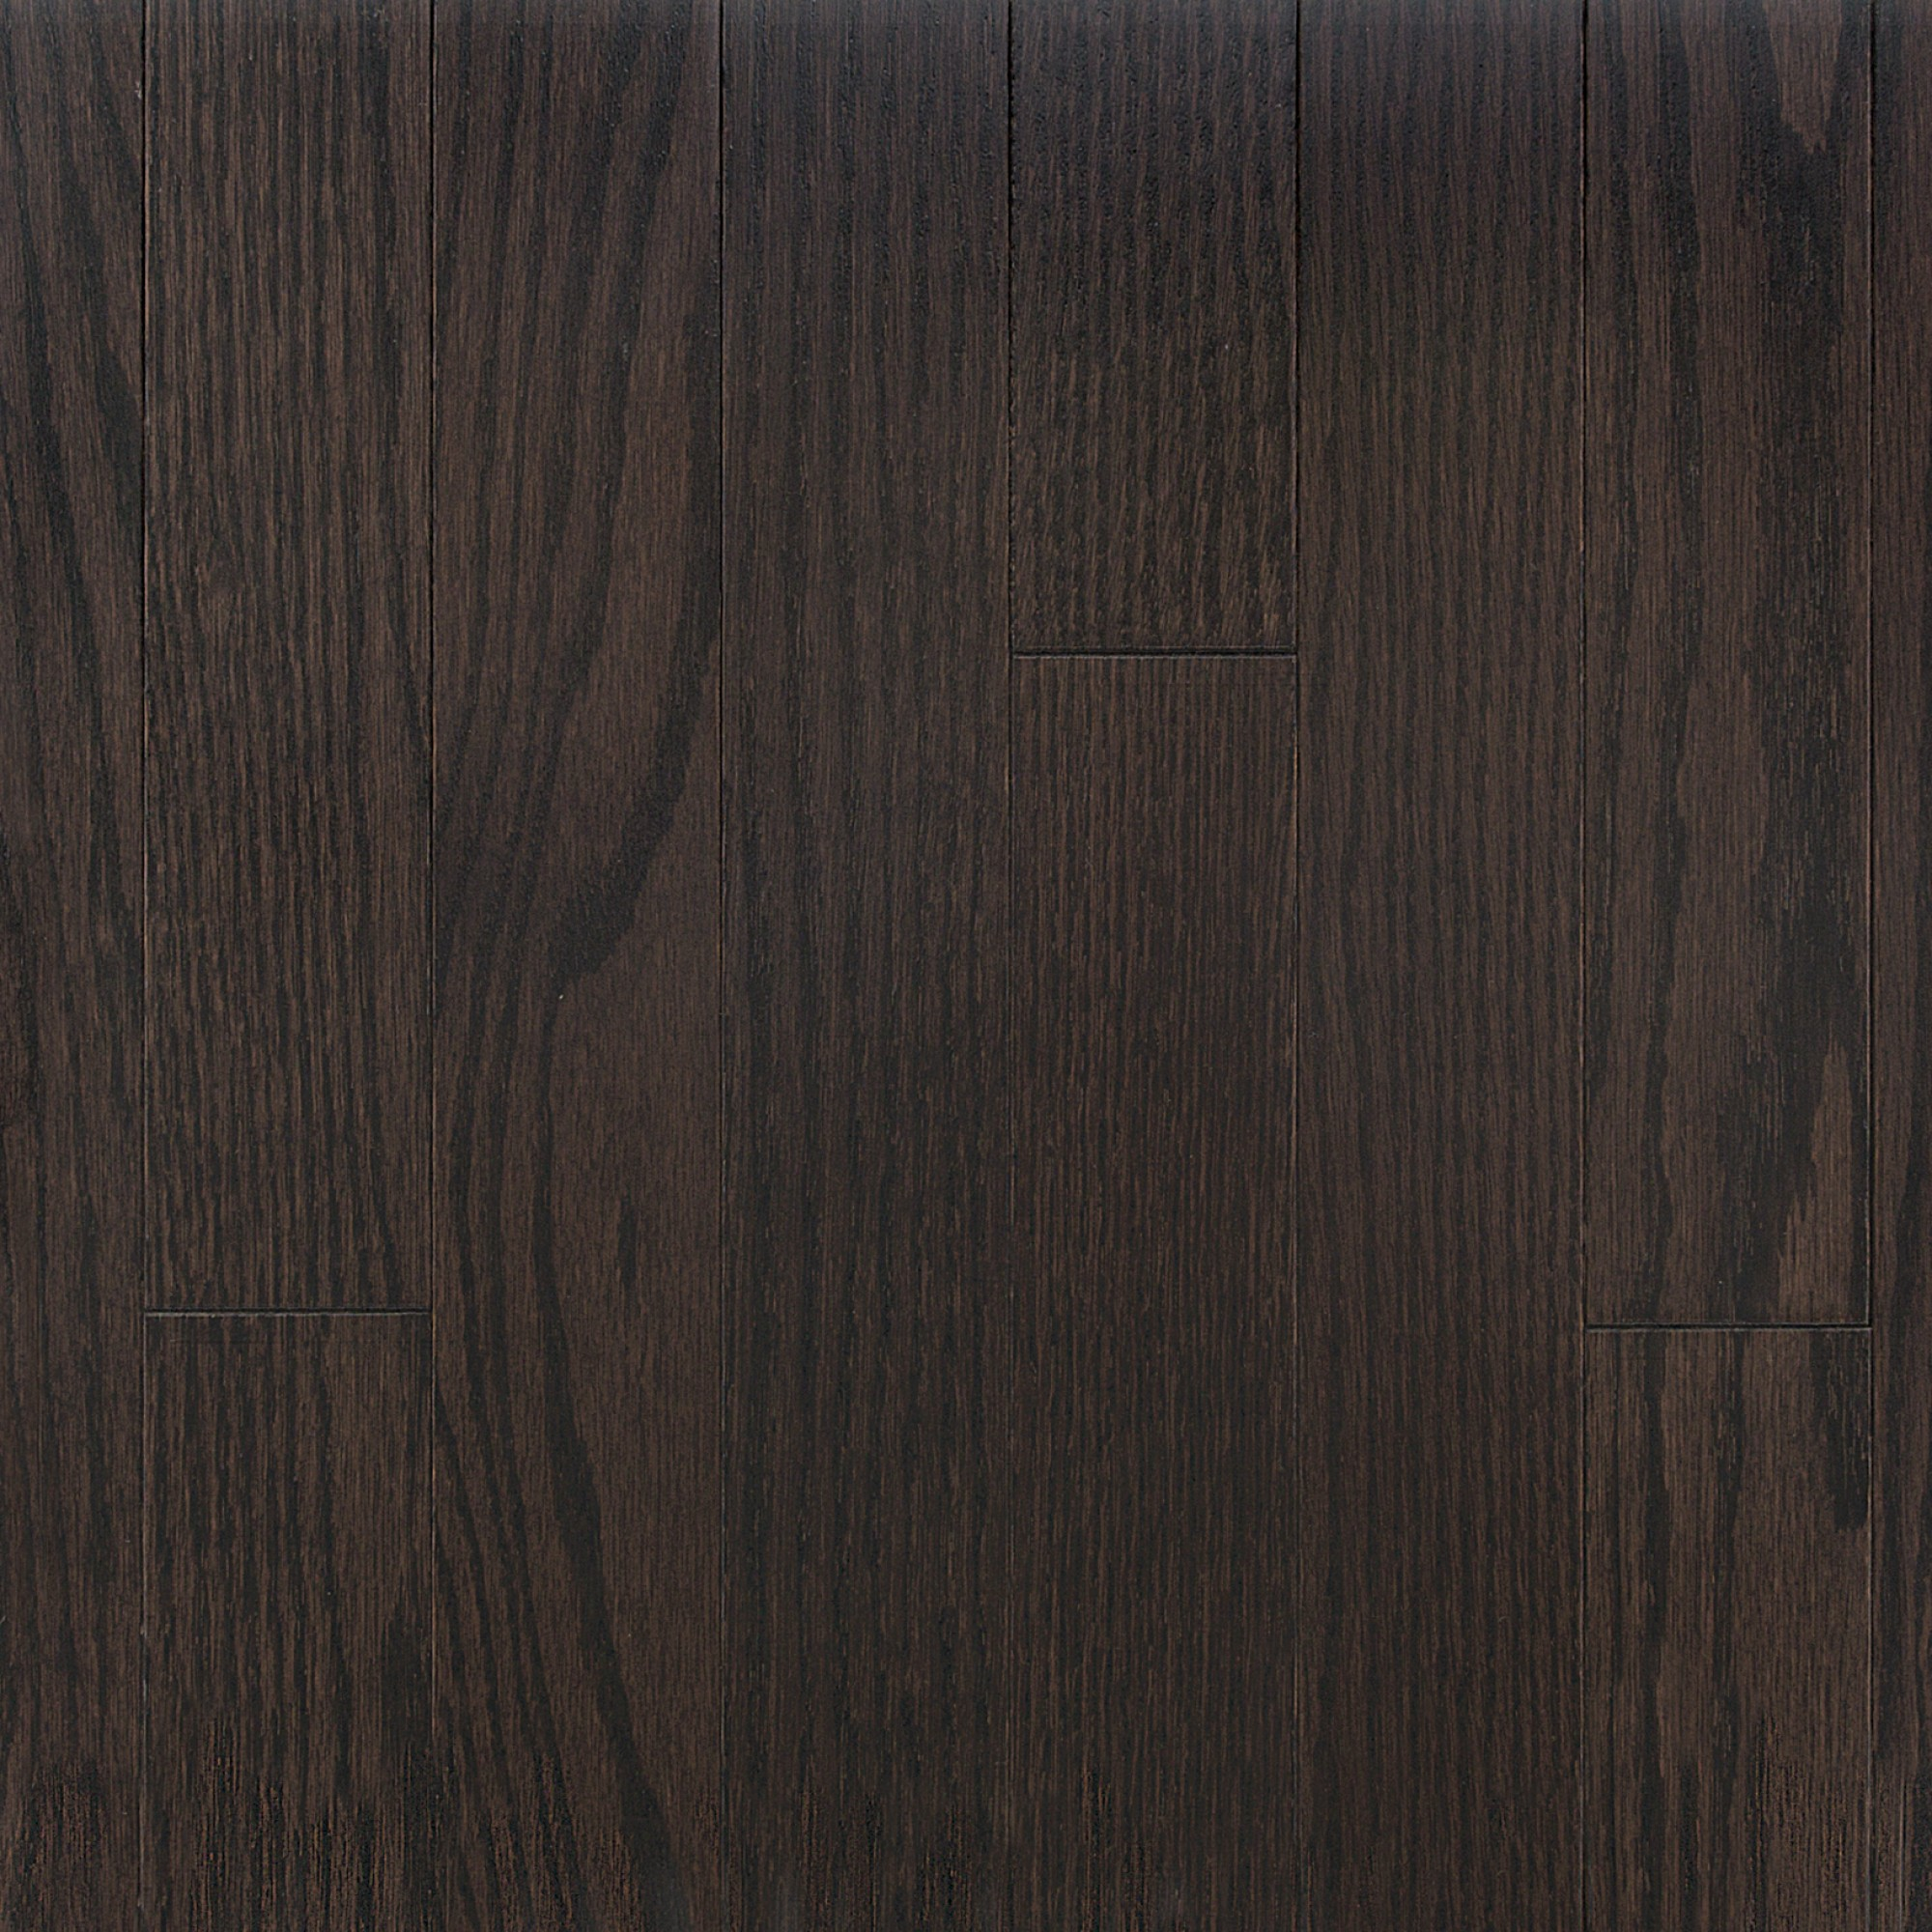 Smooth Red Oak Cocoa Vintage Hardwood Flooring And